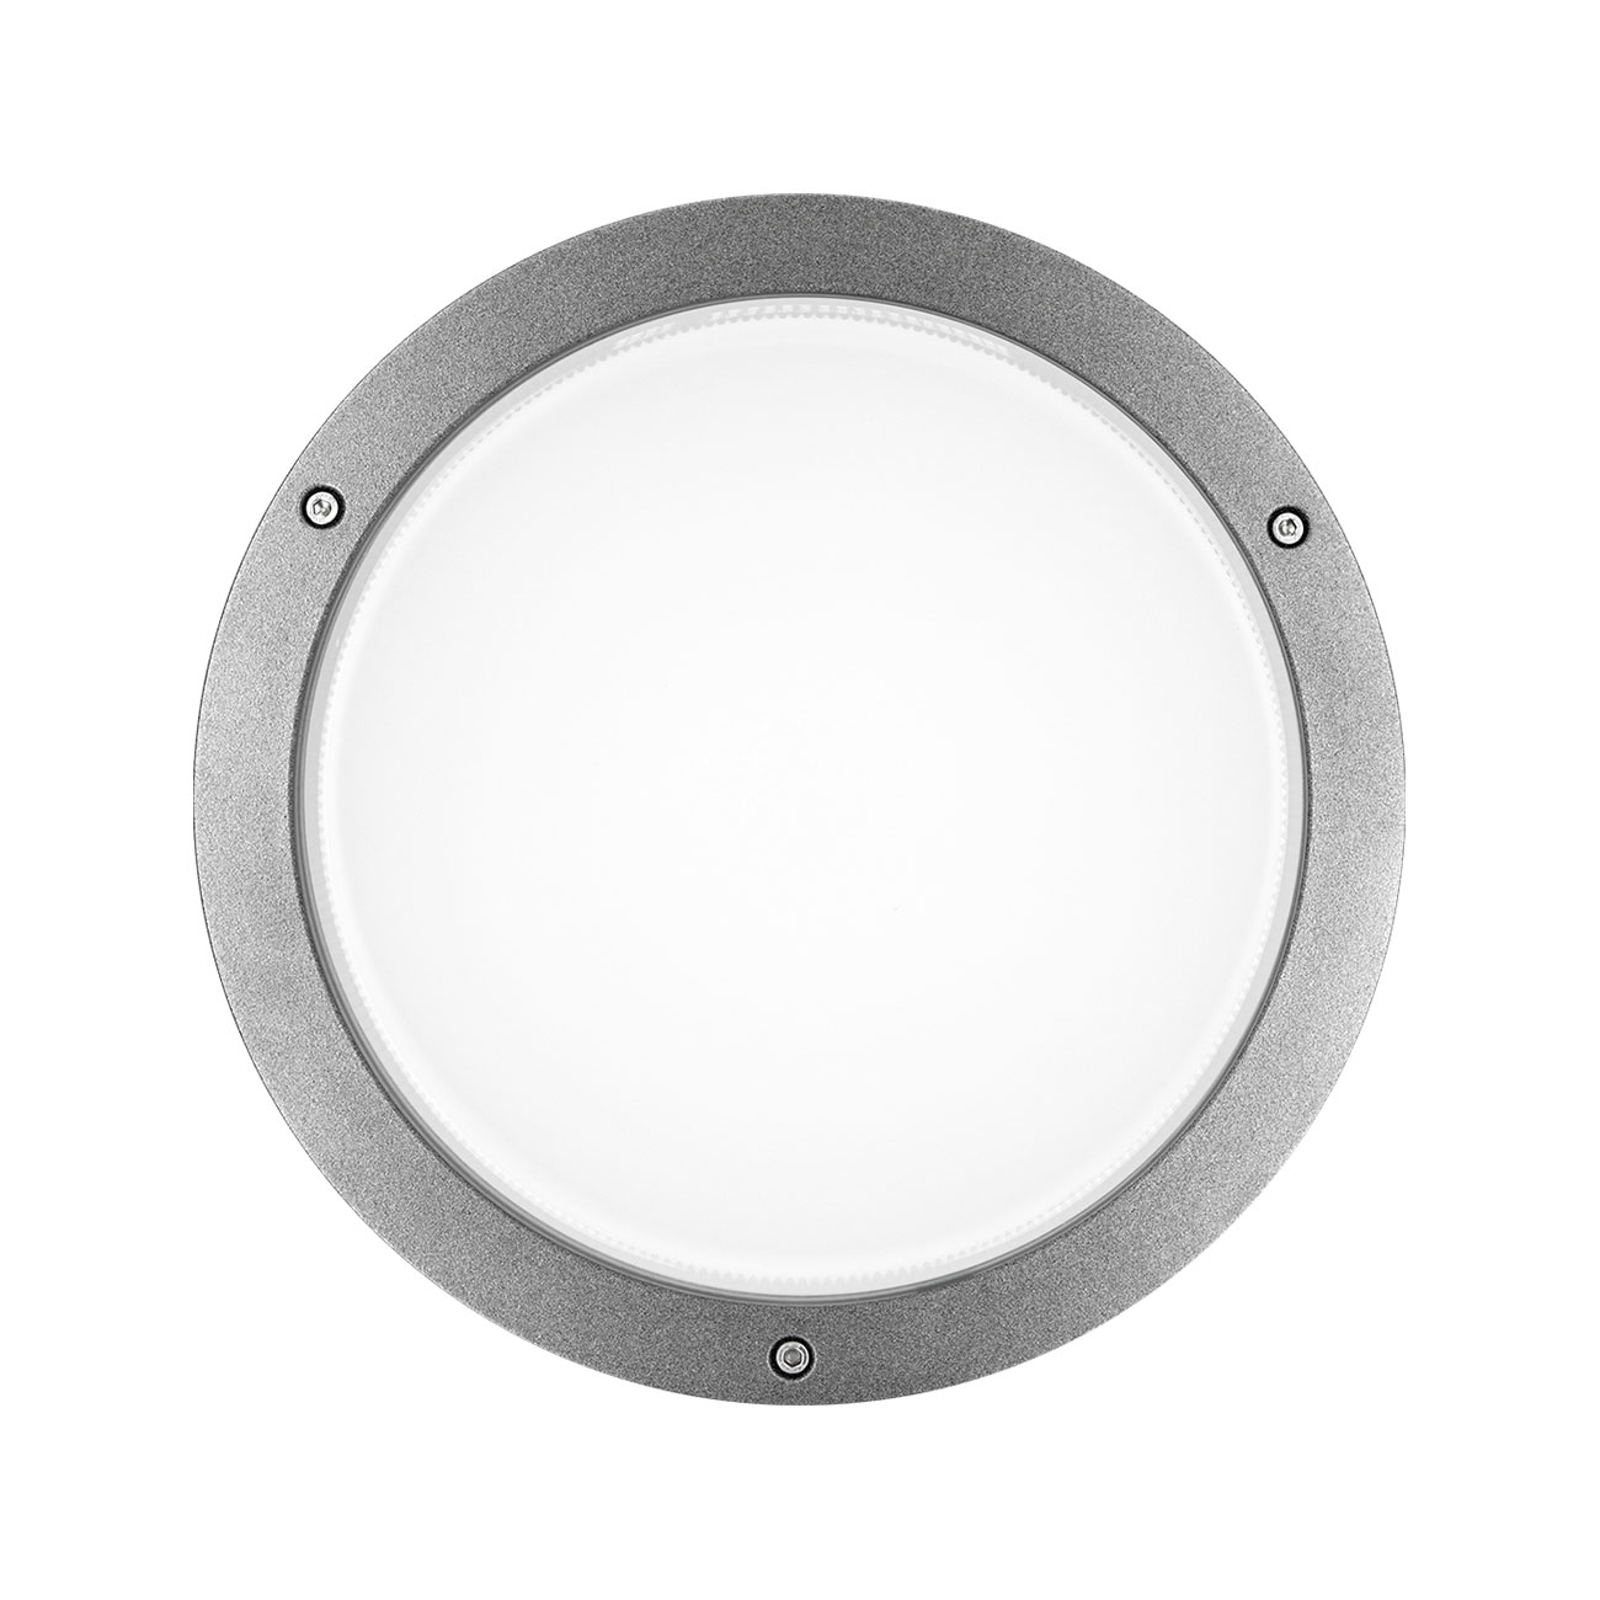 Applique LED Bliz Round 30, 30 W 3 000 K grise